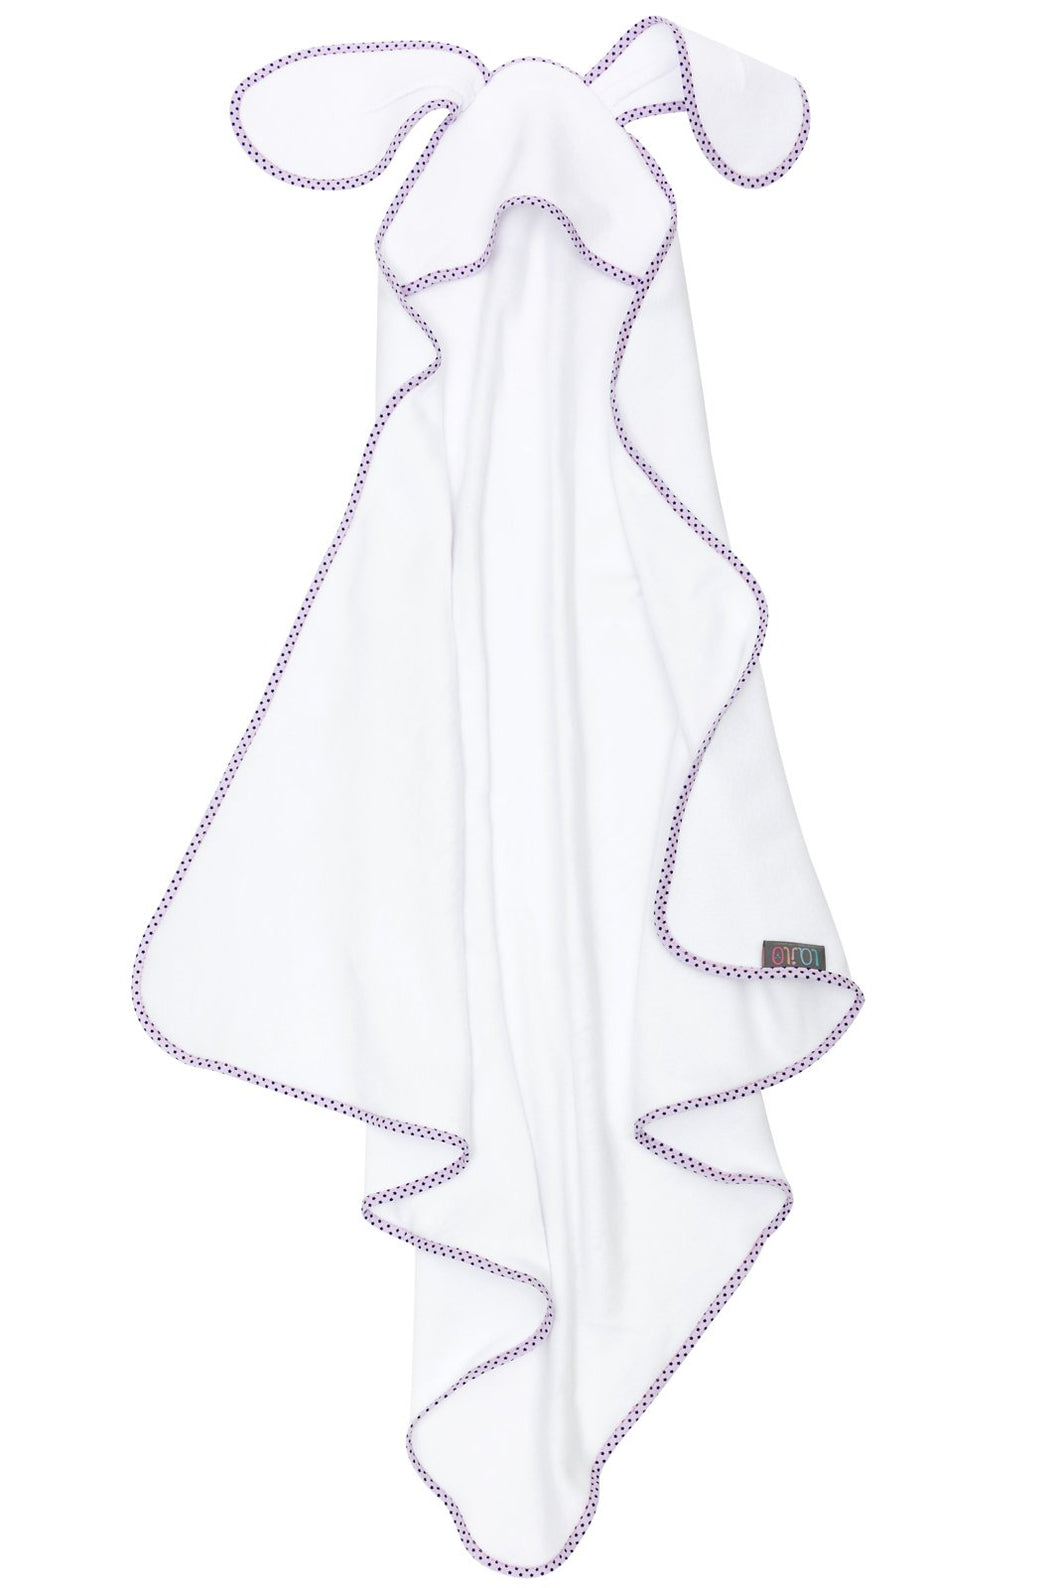 BUNNY STAR HOODED BABY TOWEL LILAC